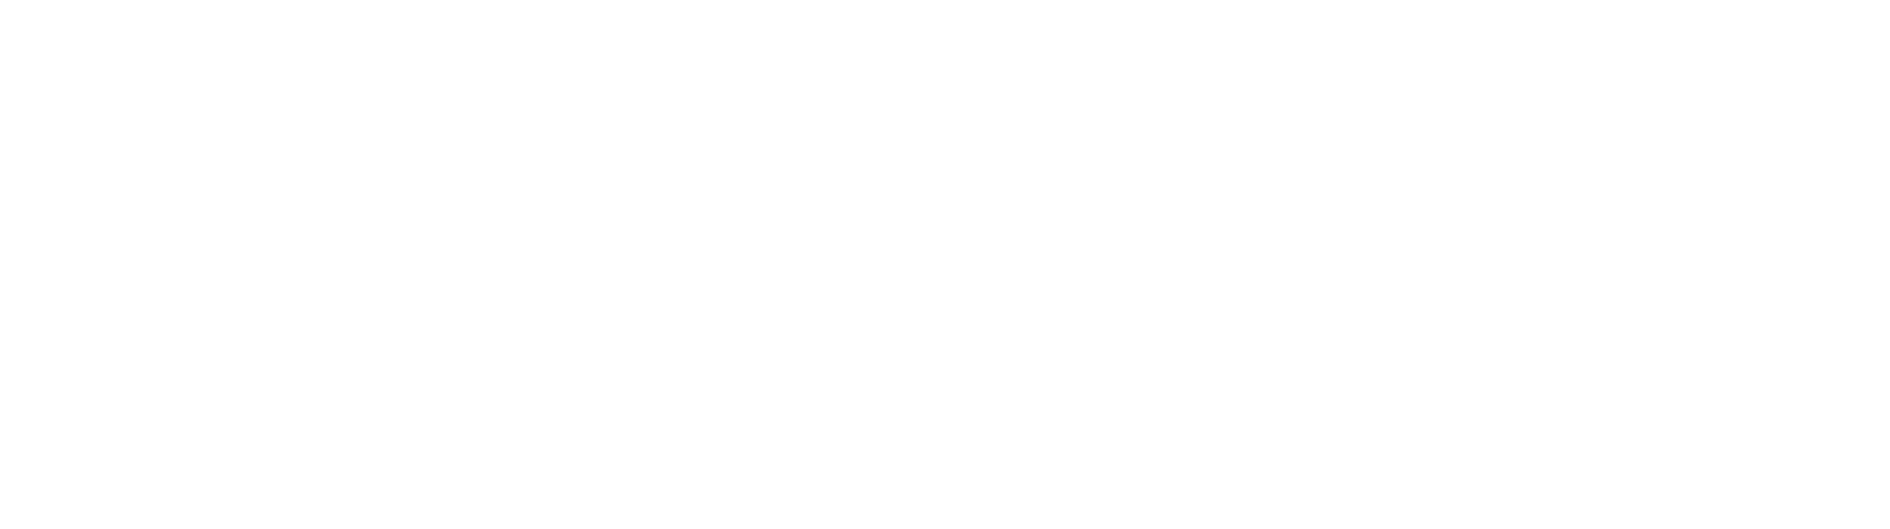 Humanidad Digital